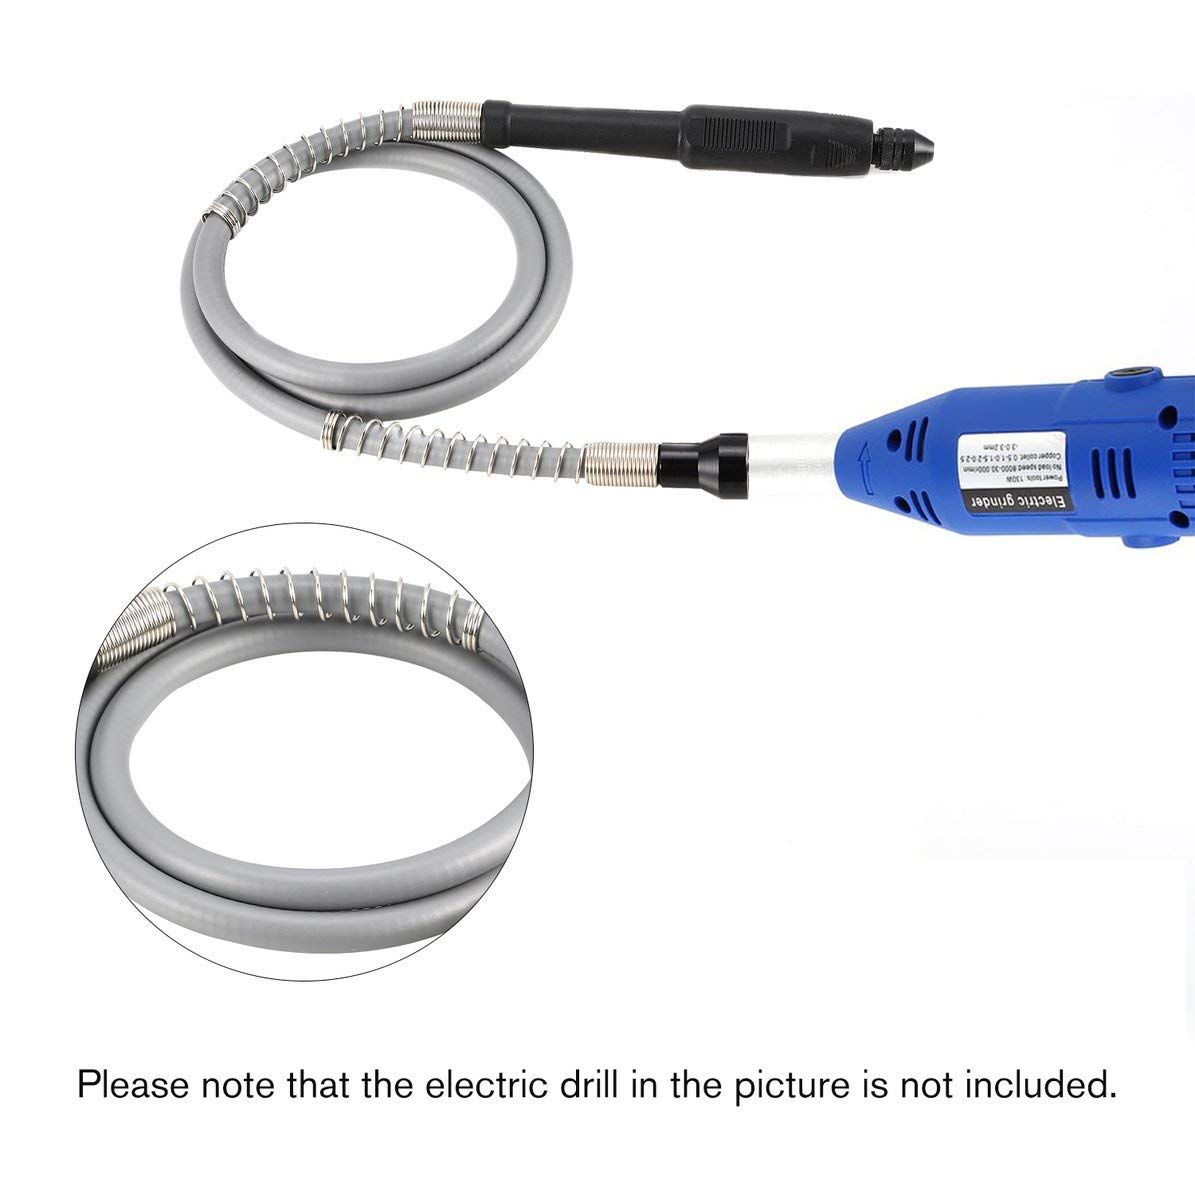 Electric Flexible Shaft Caver Grinder Carving Flexshaft Grill Chuck Extension Cord Rotatory Tool Grinding Accessory Universal Gray WEIWEITOE